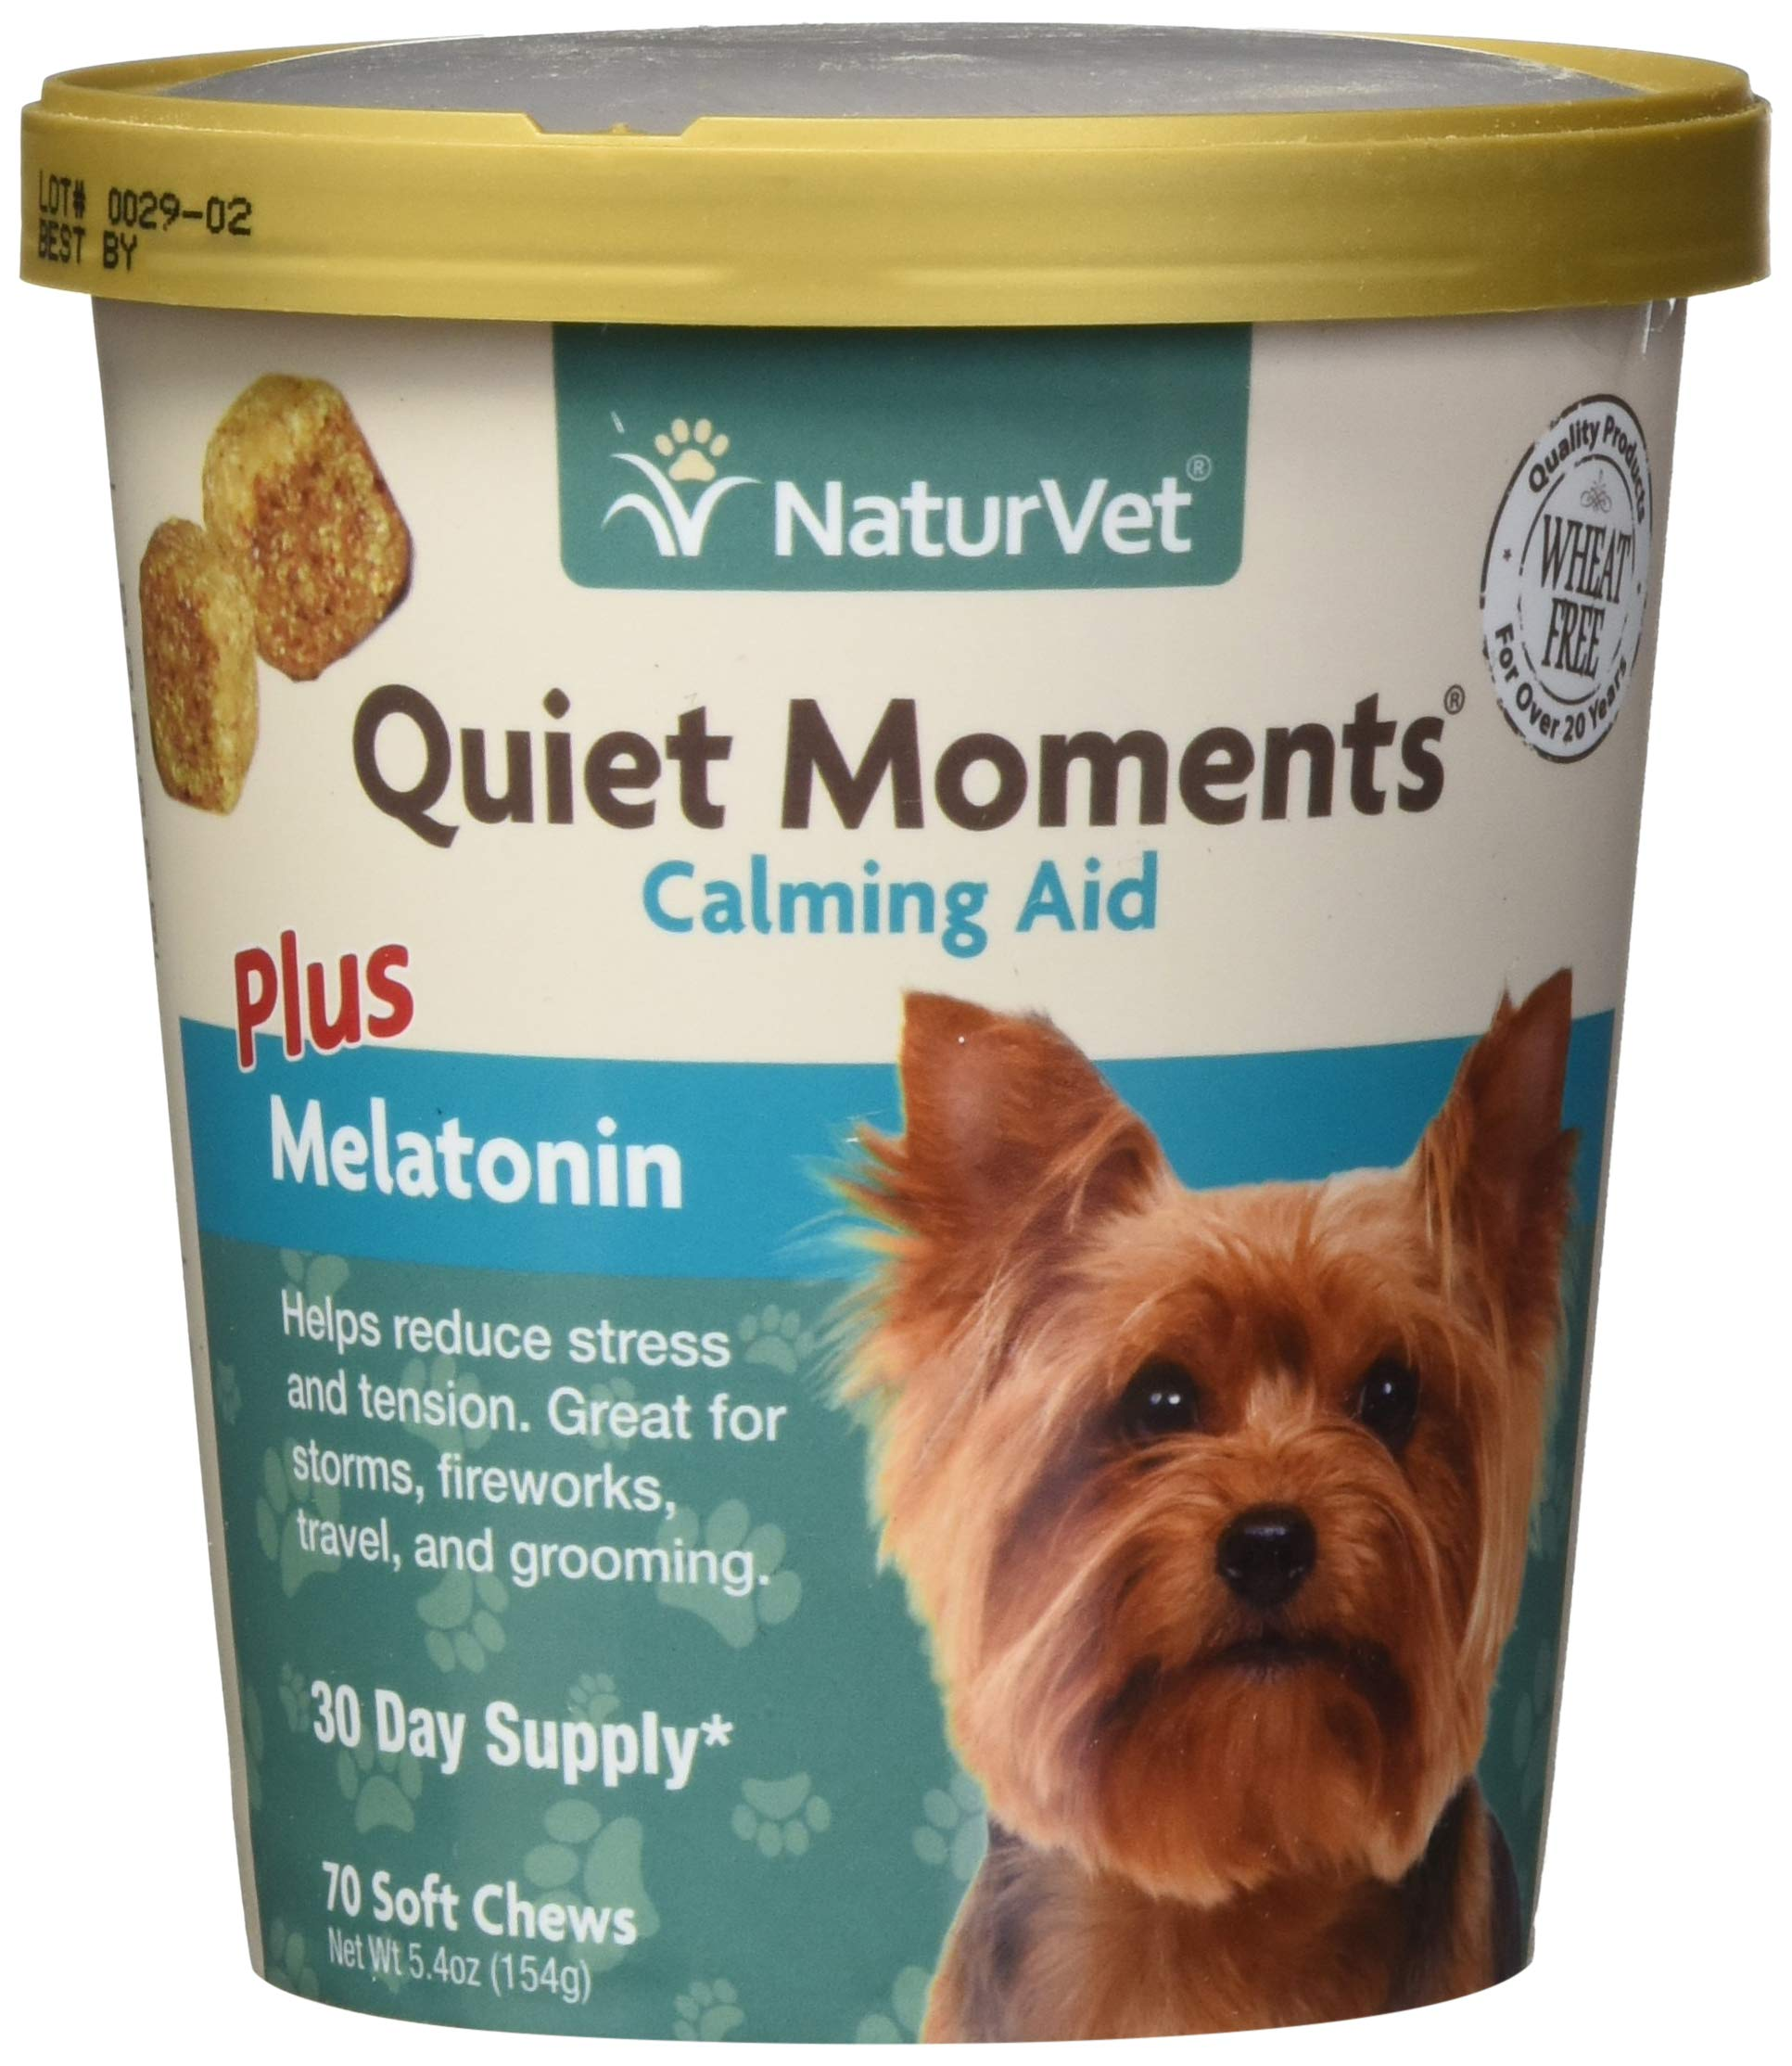 NaturVet - Quiet Moments Calming Aid for Dogs - Plus Melatonin - Helps Reduce Stress & Promote Relaxation - Great for Storms, Fireworks, Separation, Travel & Grooming - 70 Soft Chews by NaturVet